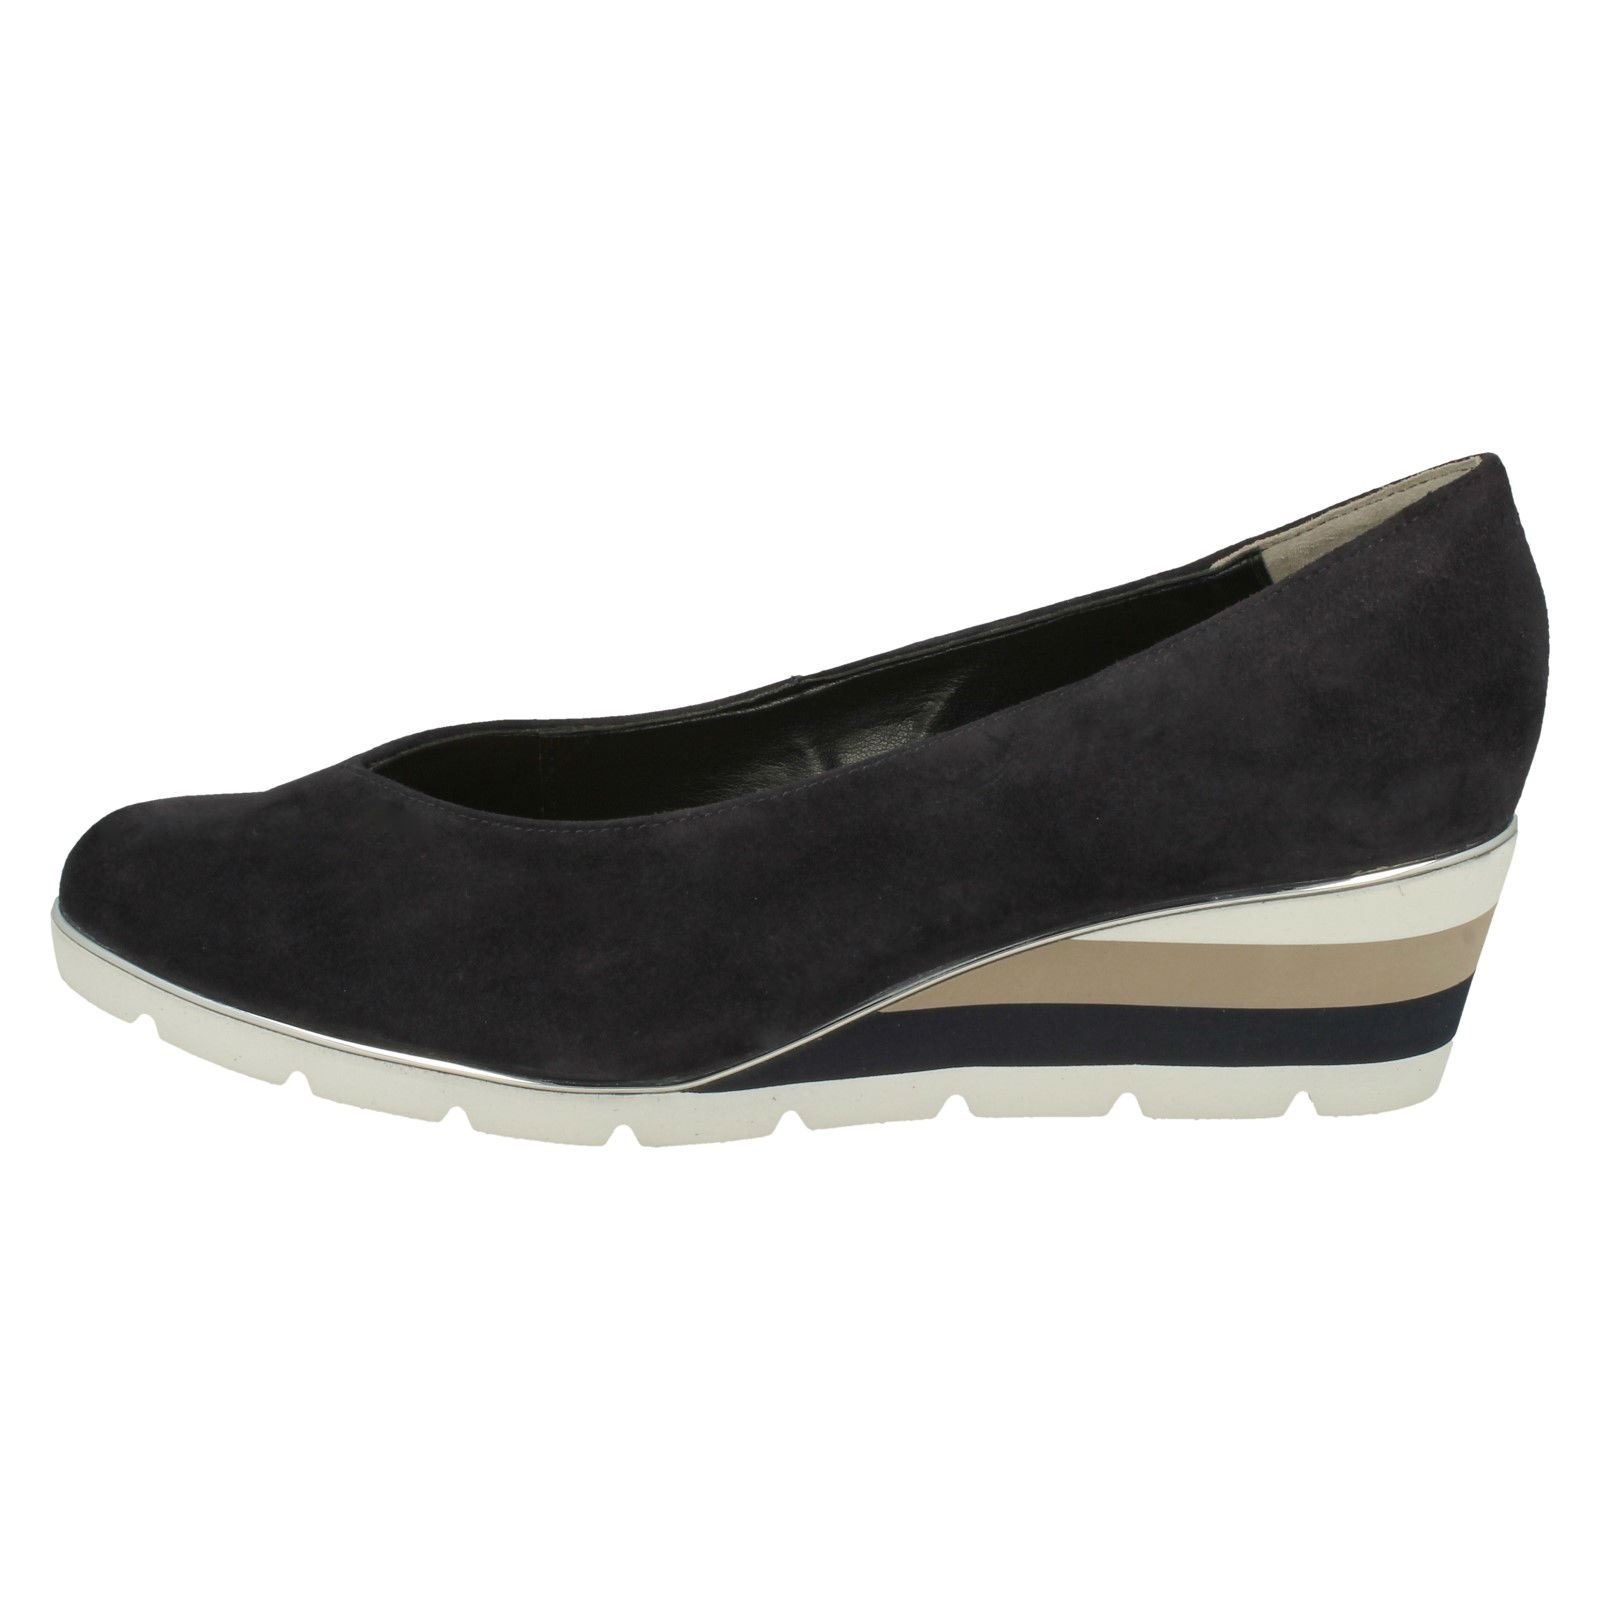 4a6690654d Ladies Van DAL Elegant Lightweight Wedge Shoes Ariah UK 6 Midnight Summer  (blue) D. About this product. Picture 1 of 10  Picture 2 of 10 ...